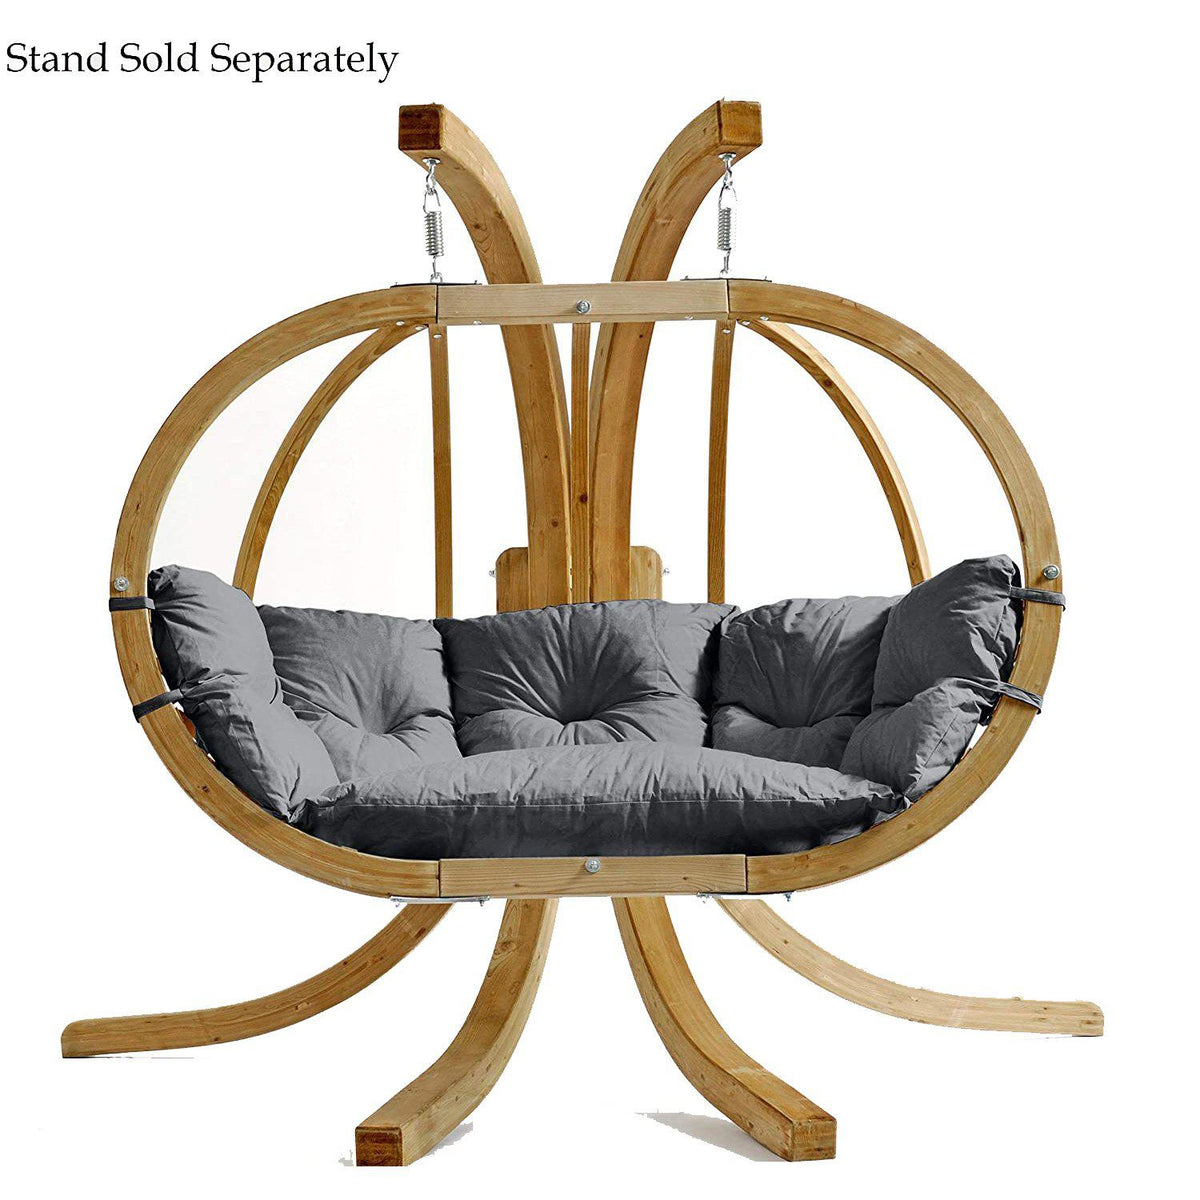 Globo Royal Chair, from Byer of Maine